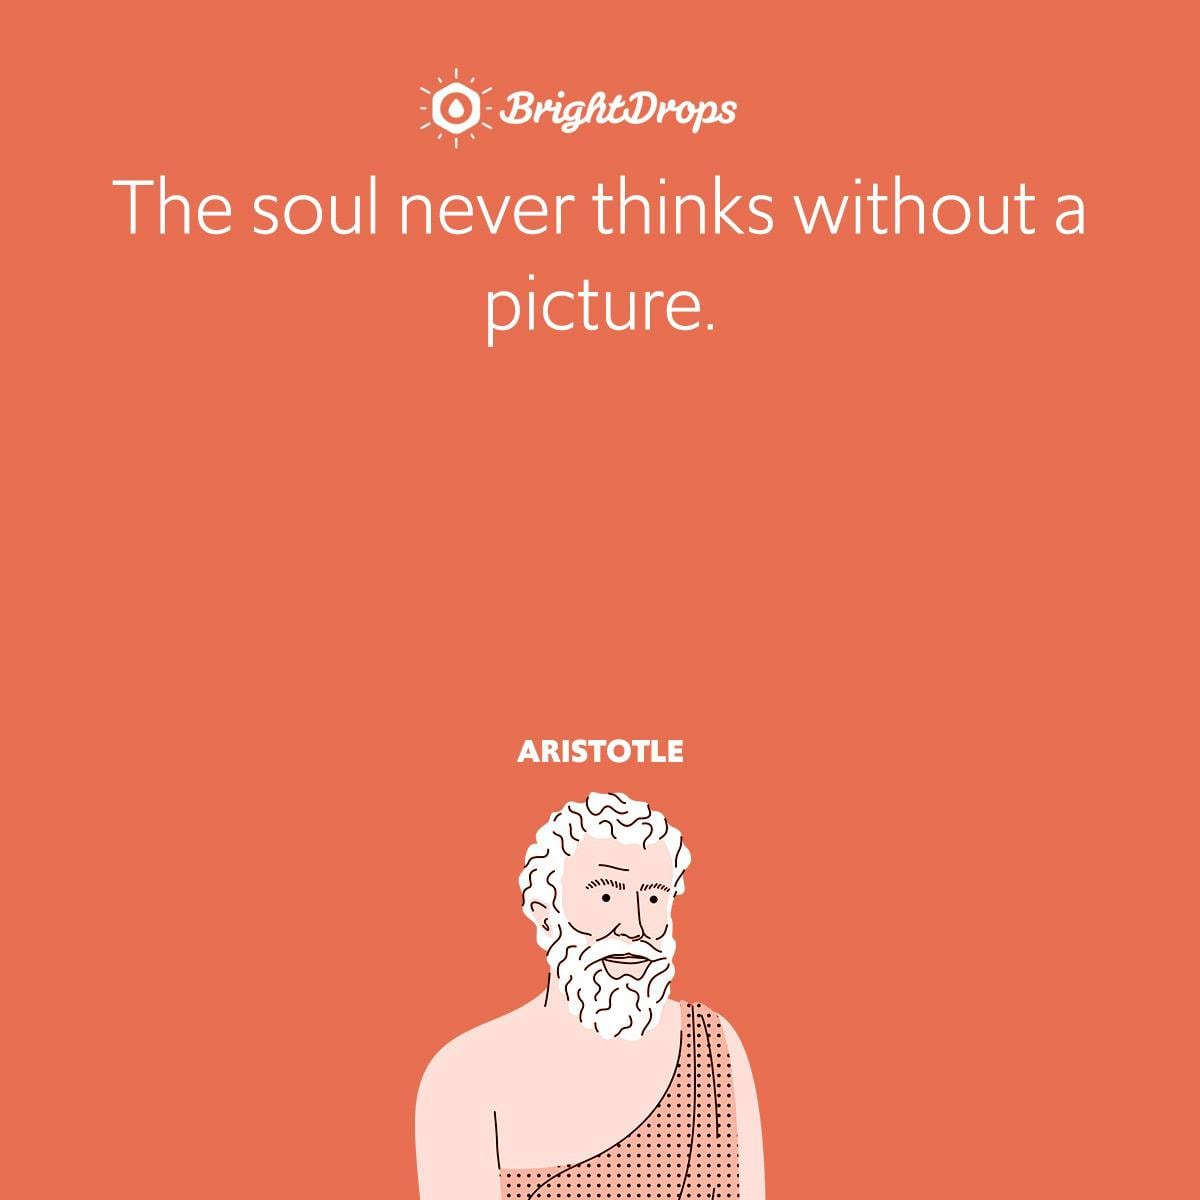 The soul never thinks without a picture.